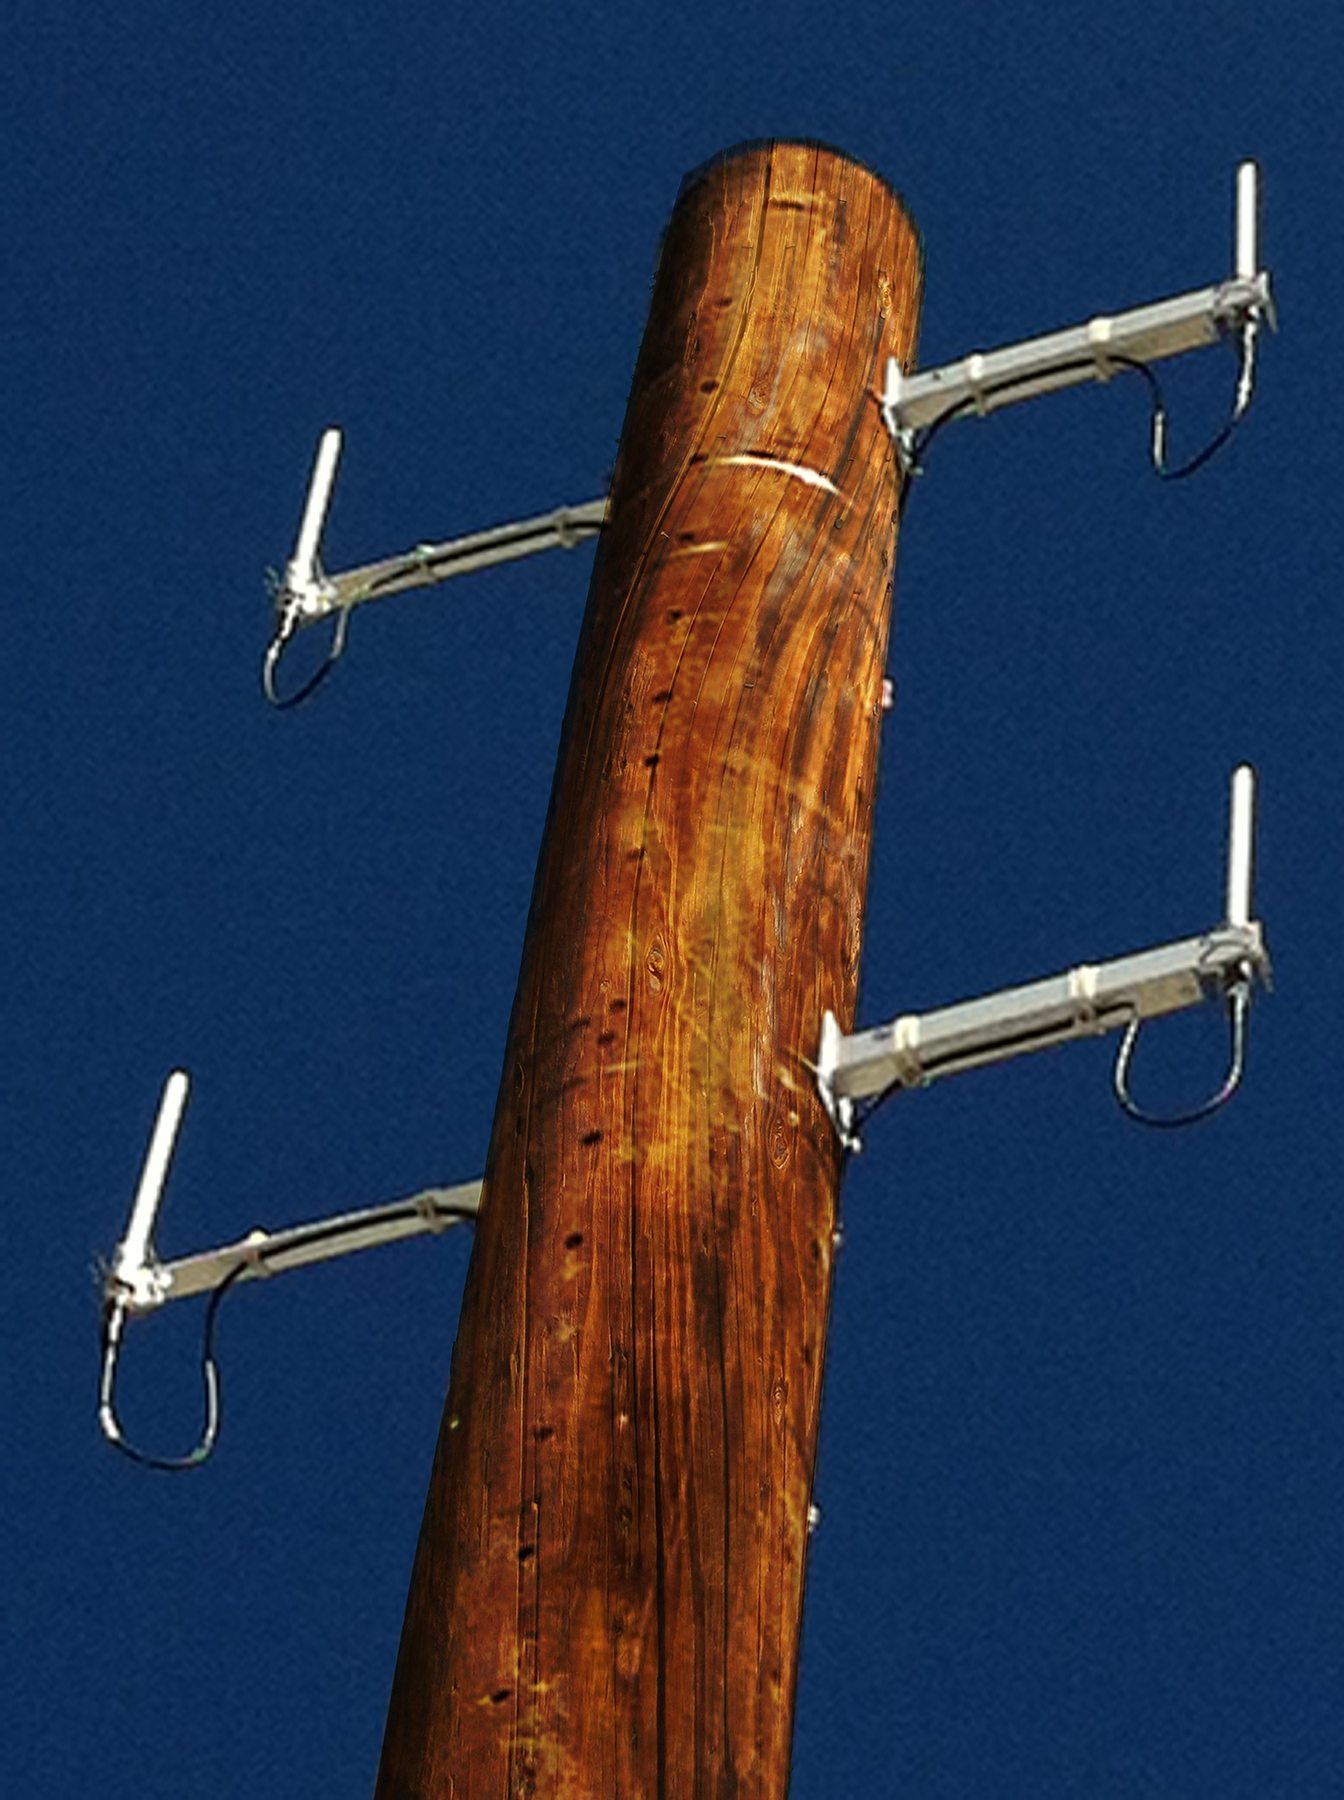 Rendering of wireless utility data equipment on a utility pole.